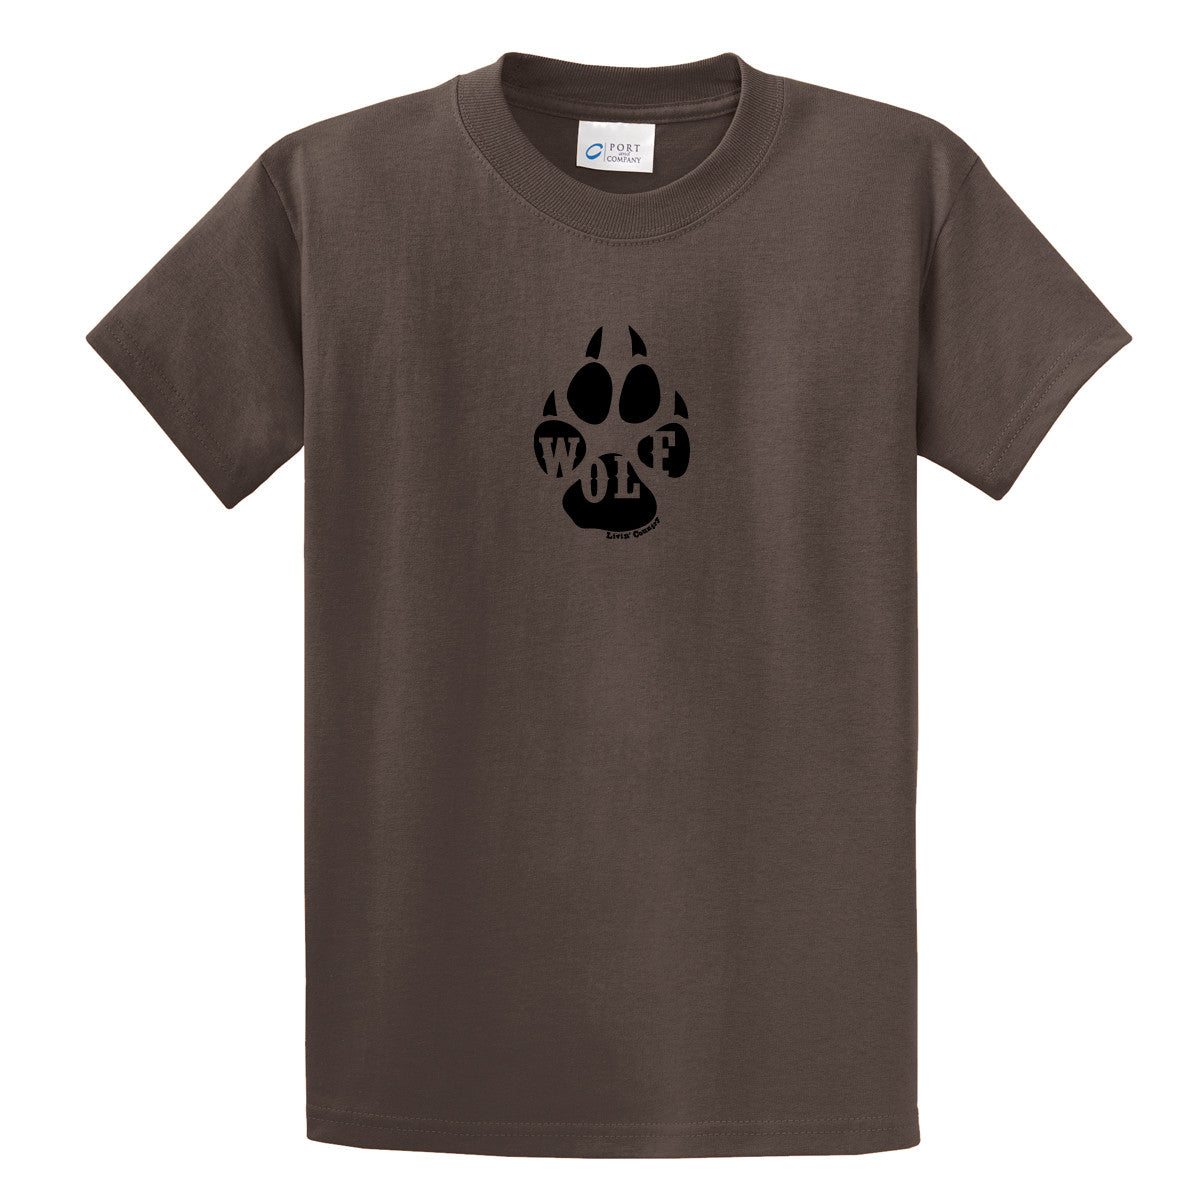 Adult Livin' Country Wolf Track T-shirt - Livin' Country Apparel & Accessories  - 1